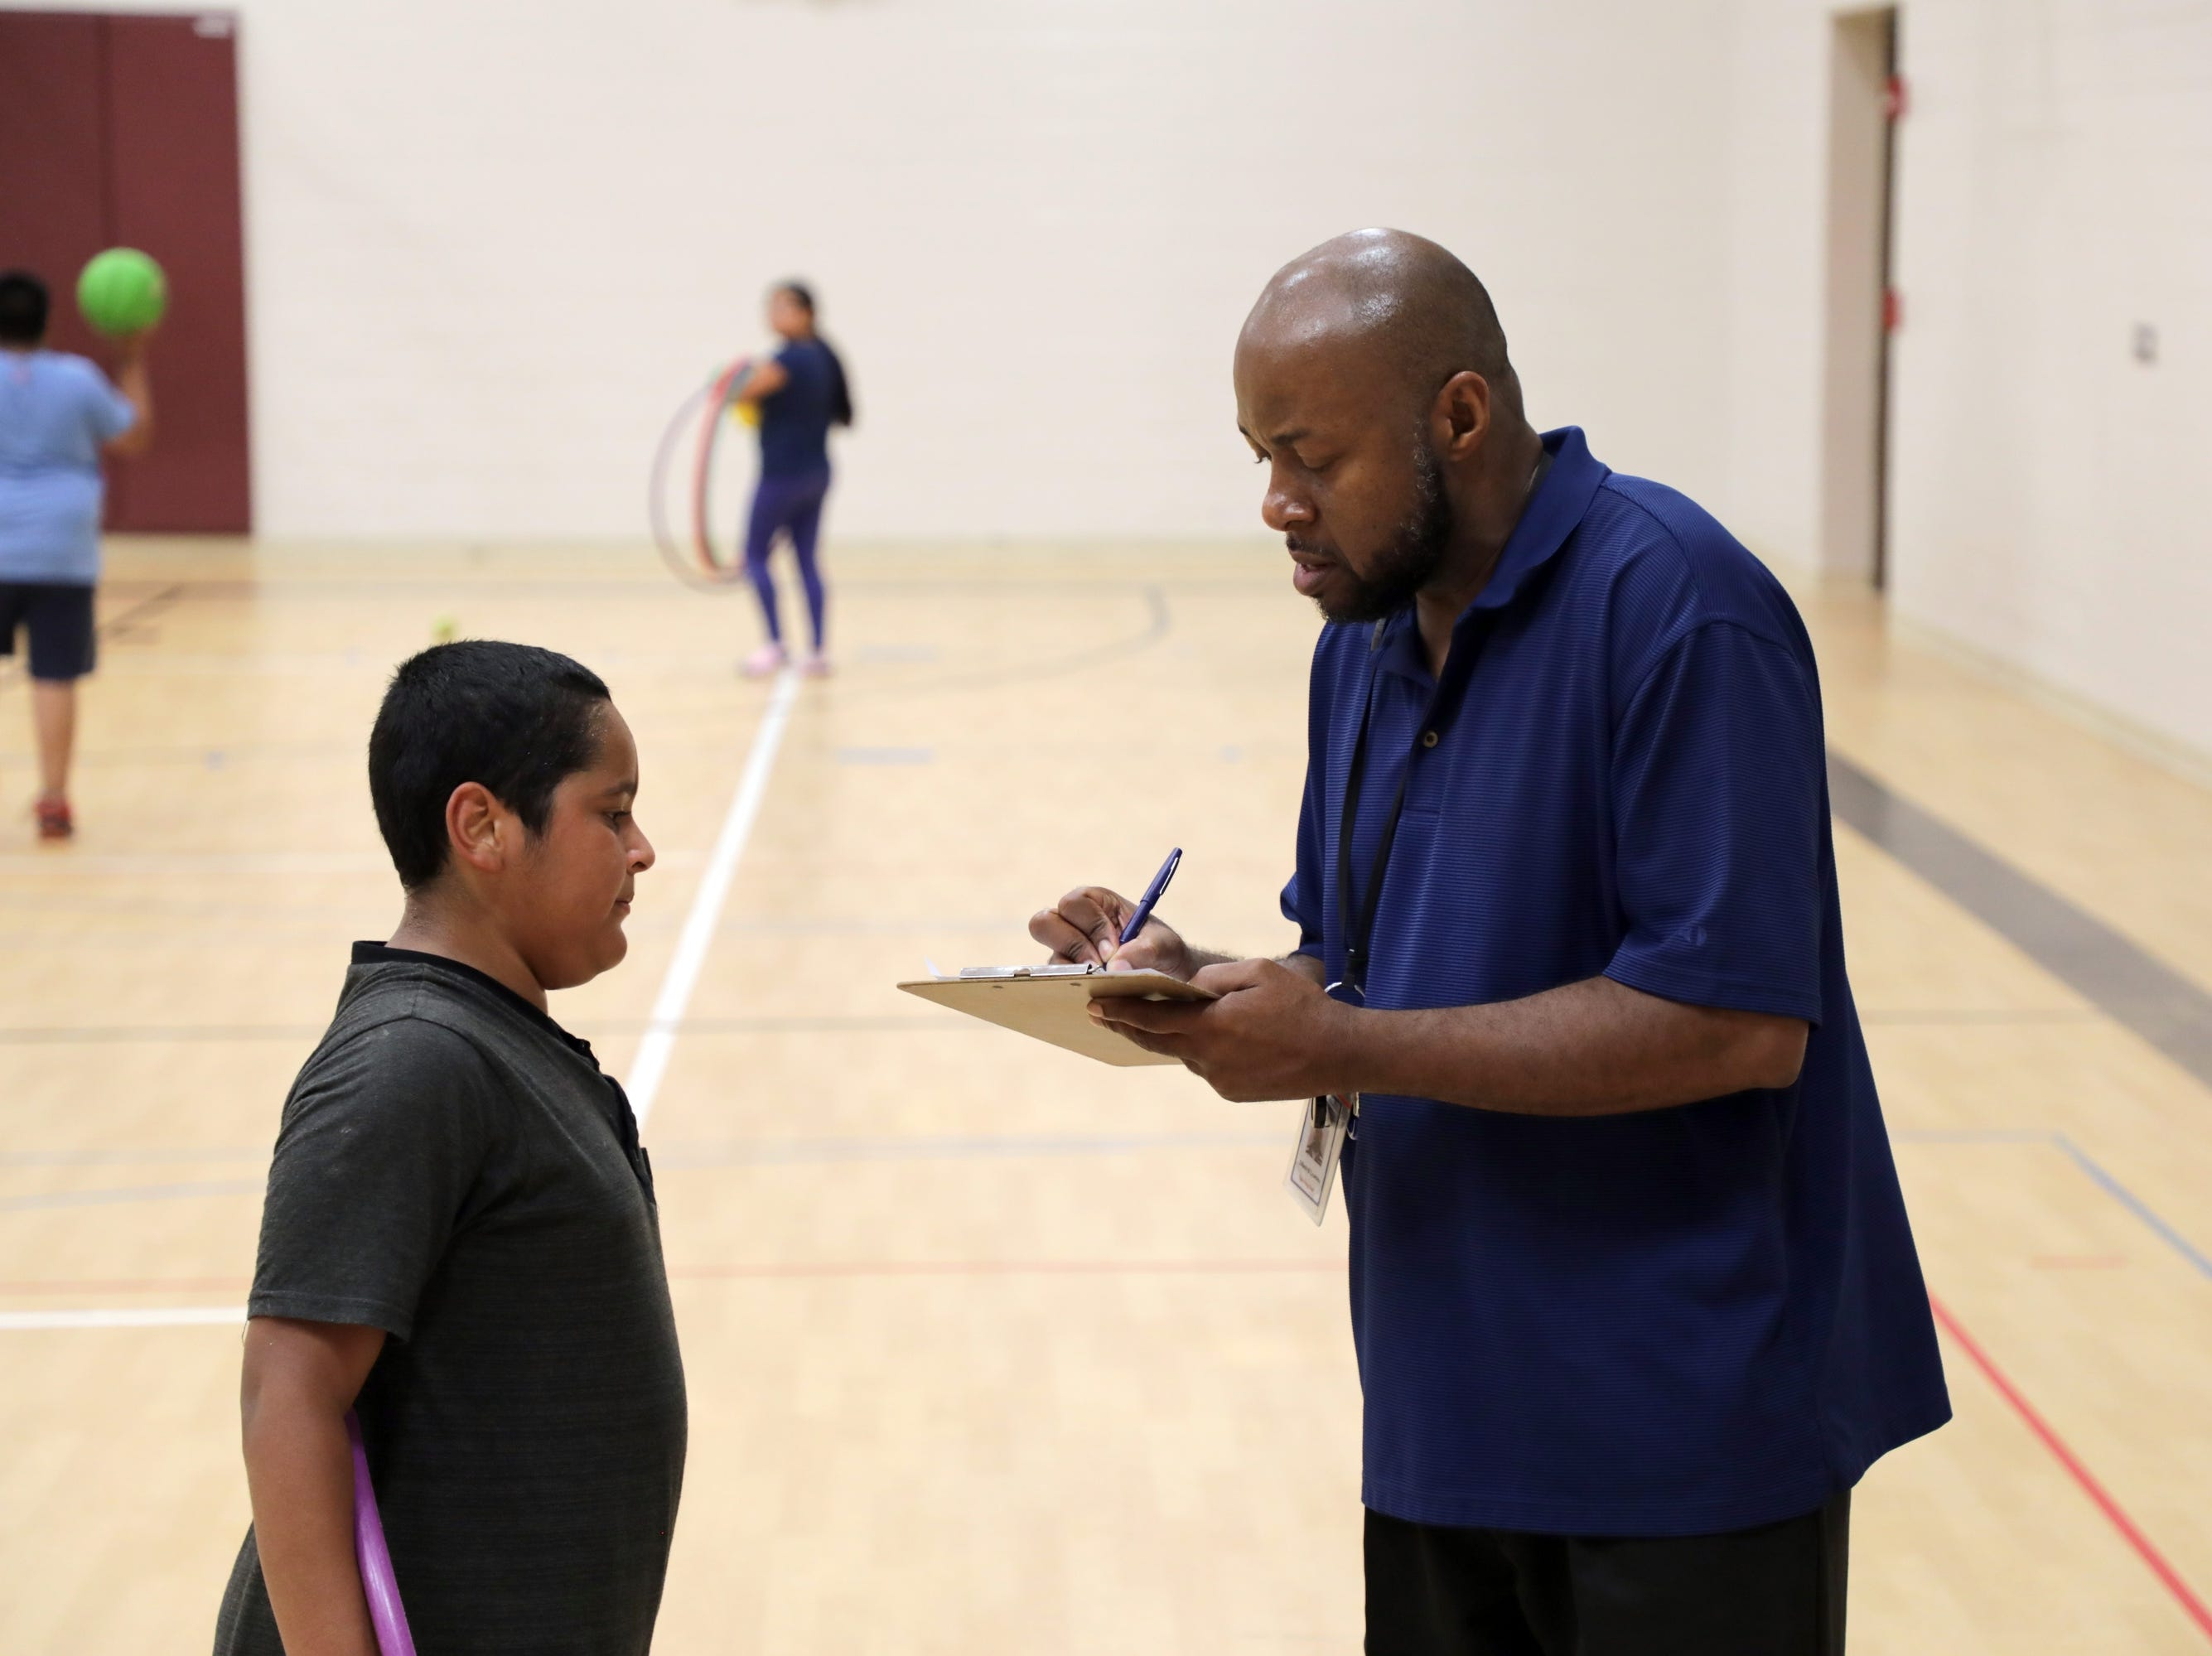 Racine WI – Edward Lawson checks in a student at the after school activities at Julian Thomas Elementary School.